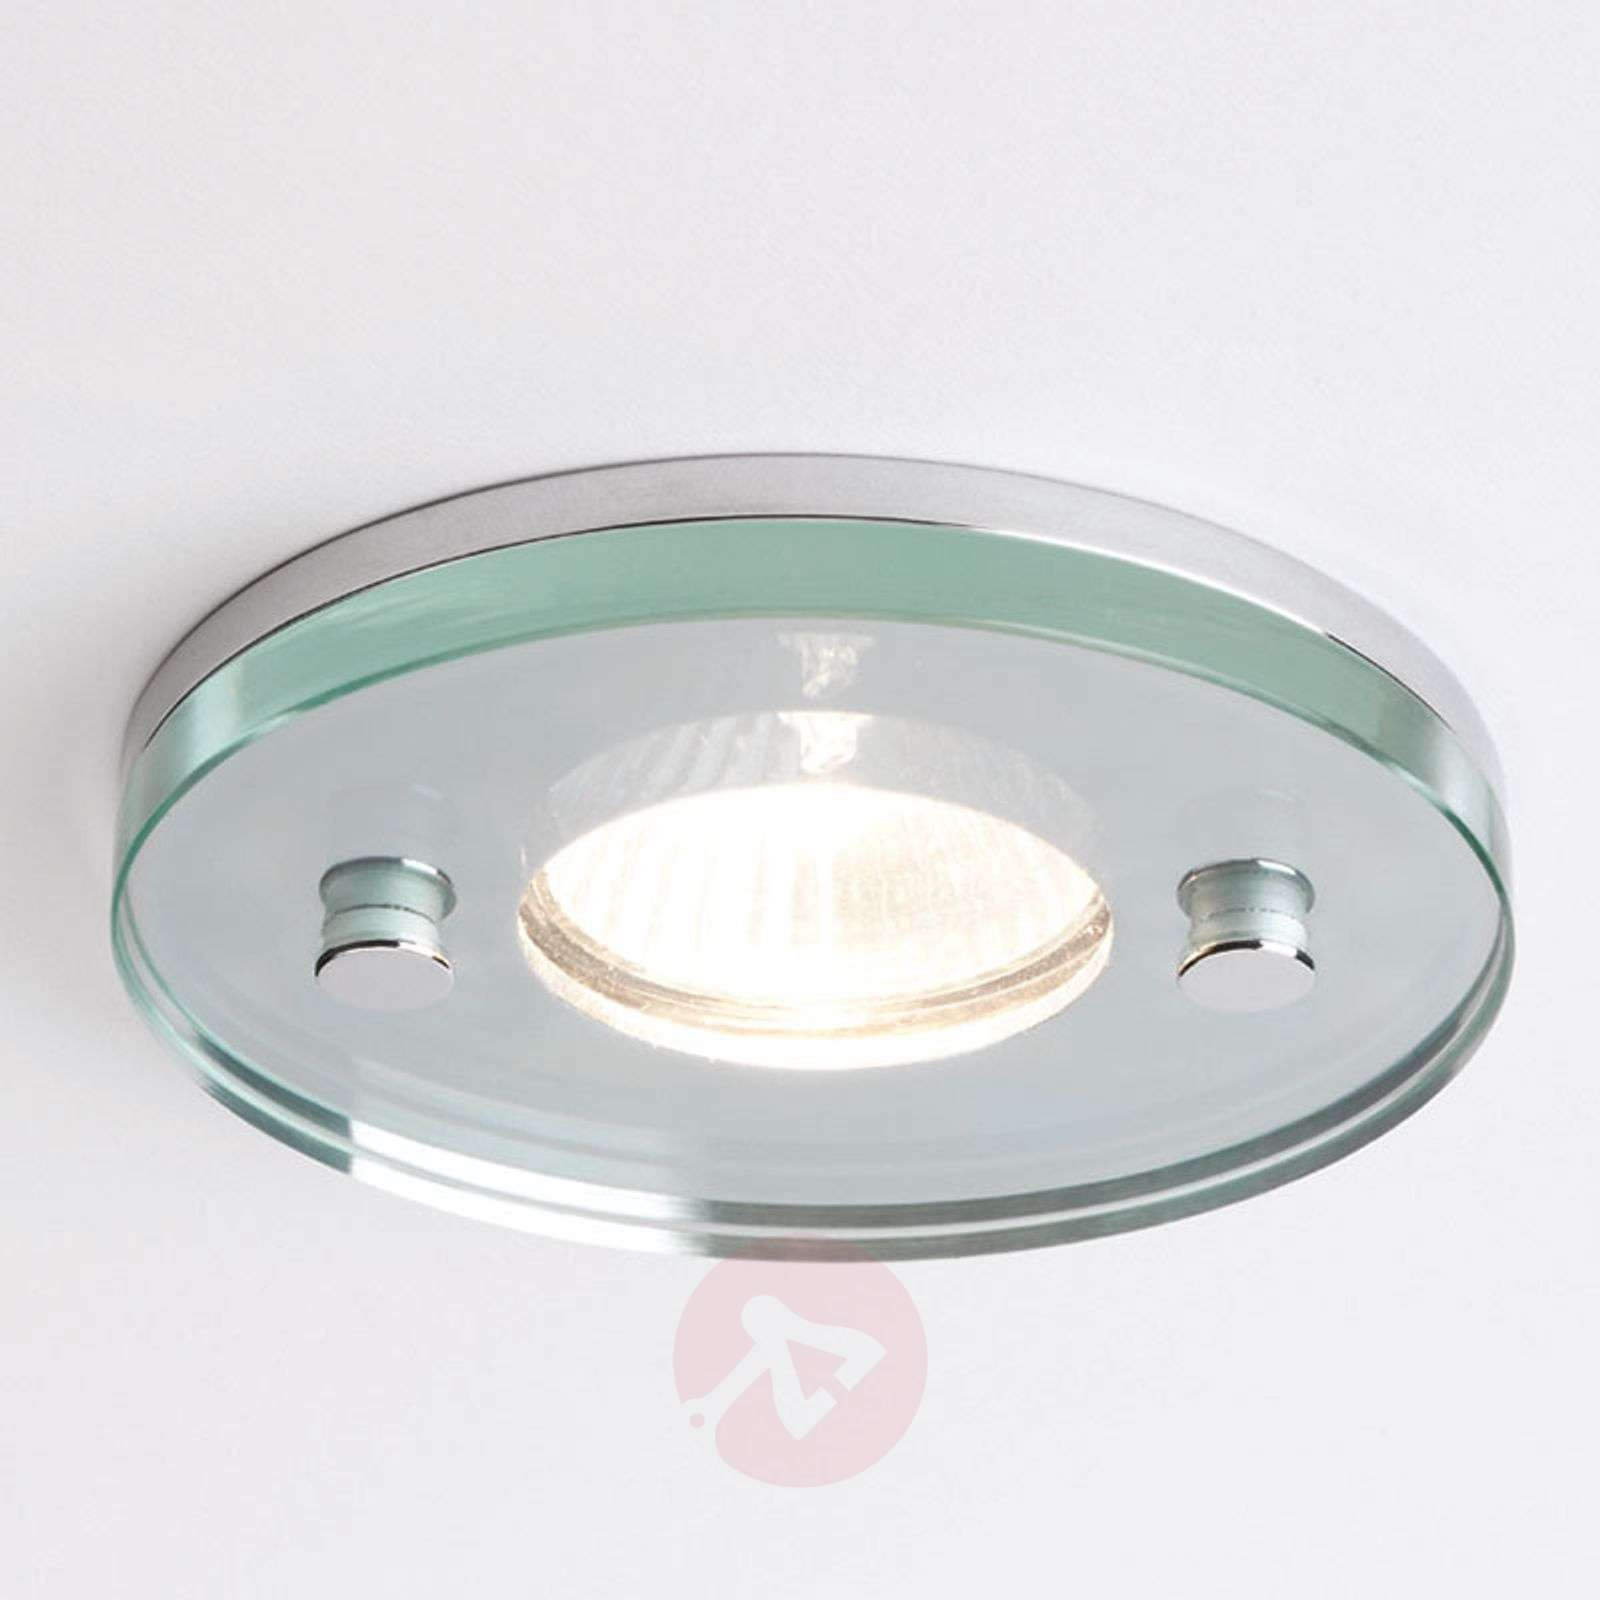 Downlight ICE ROUND 12V-1020107-02